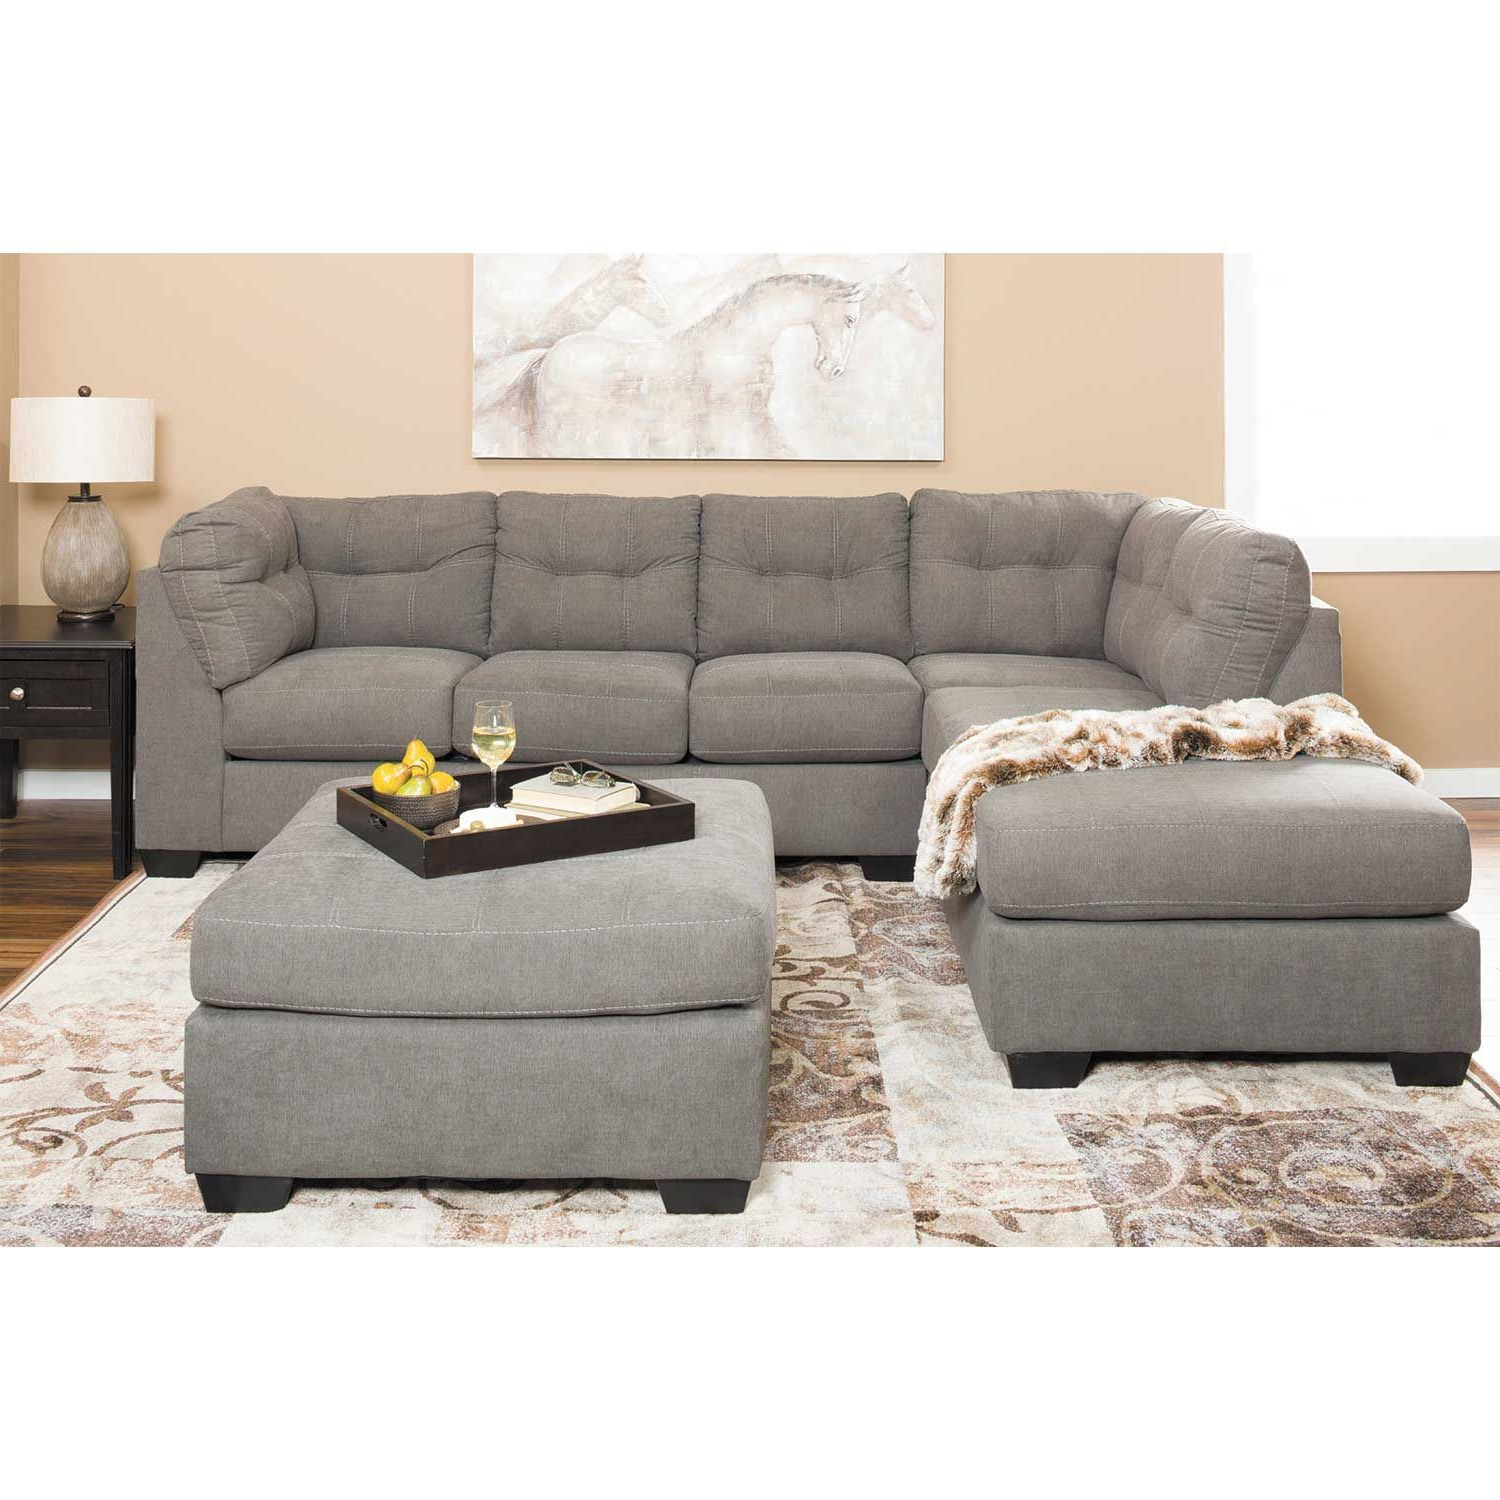 Well Known Maier Charcoal 2 Piece Sectional With Raf Chaise 4520017 For 2pc Burland Contemporary Sectional Sofas Charcoal (View 1 of 20)